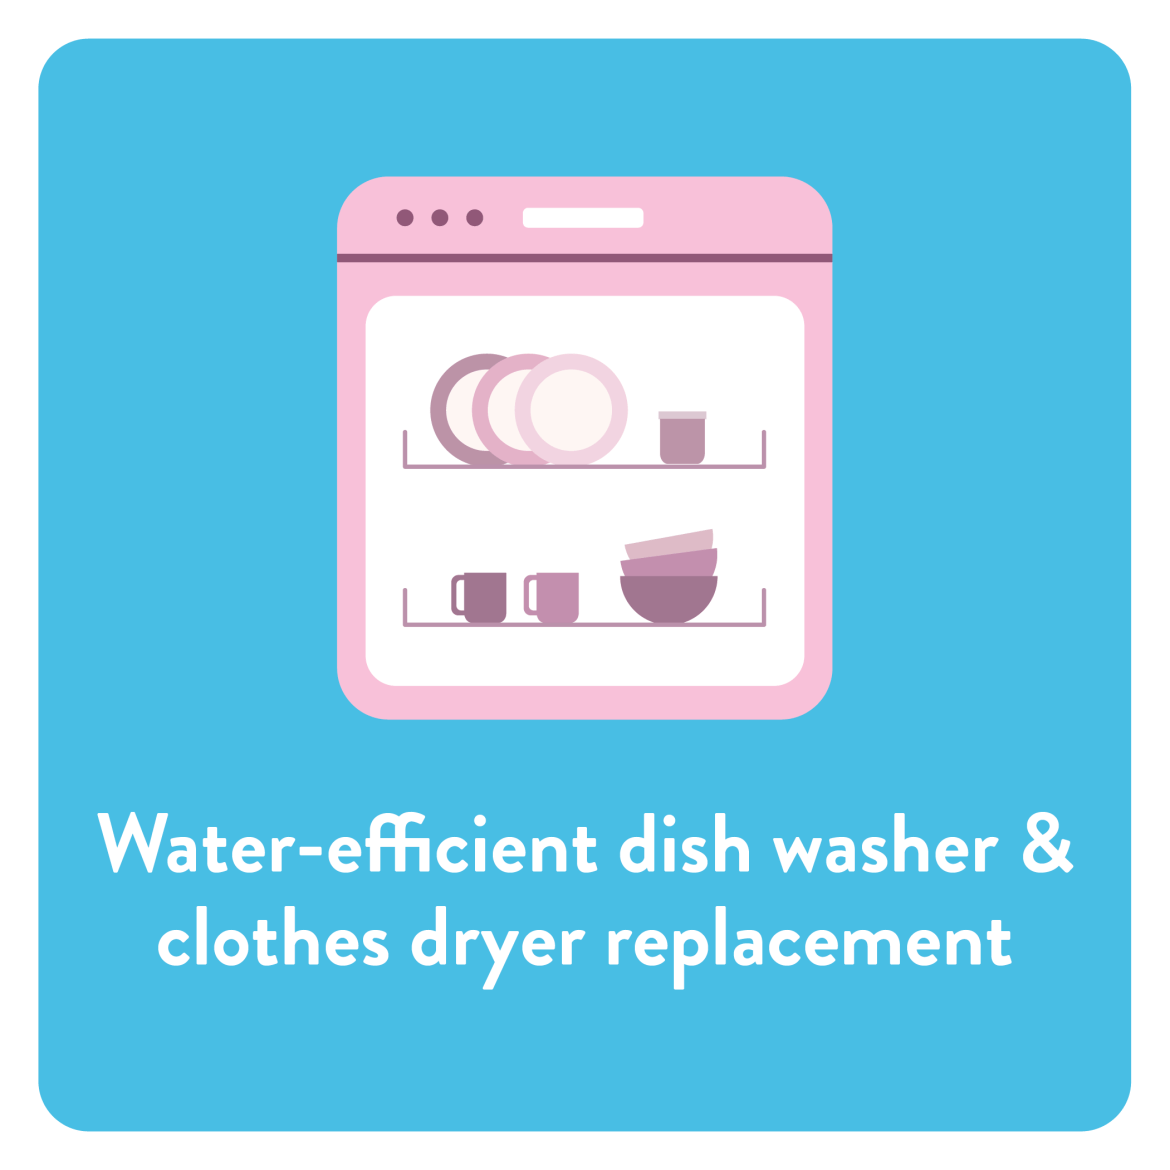 Water-efficient dish washer and clothes dryer replacement